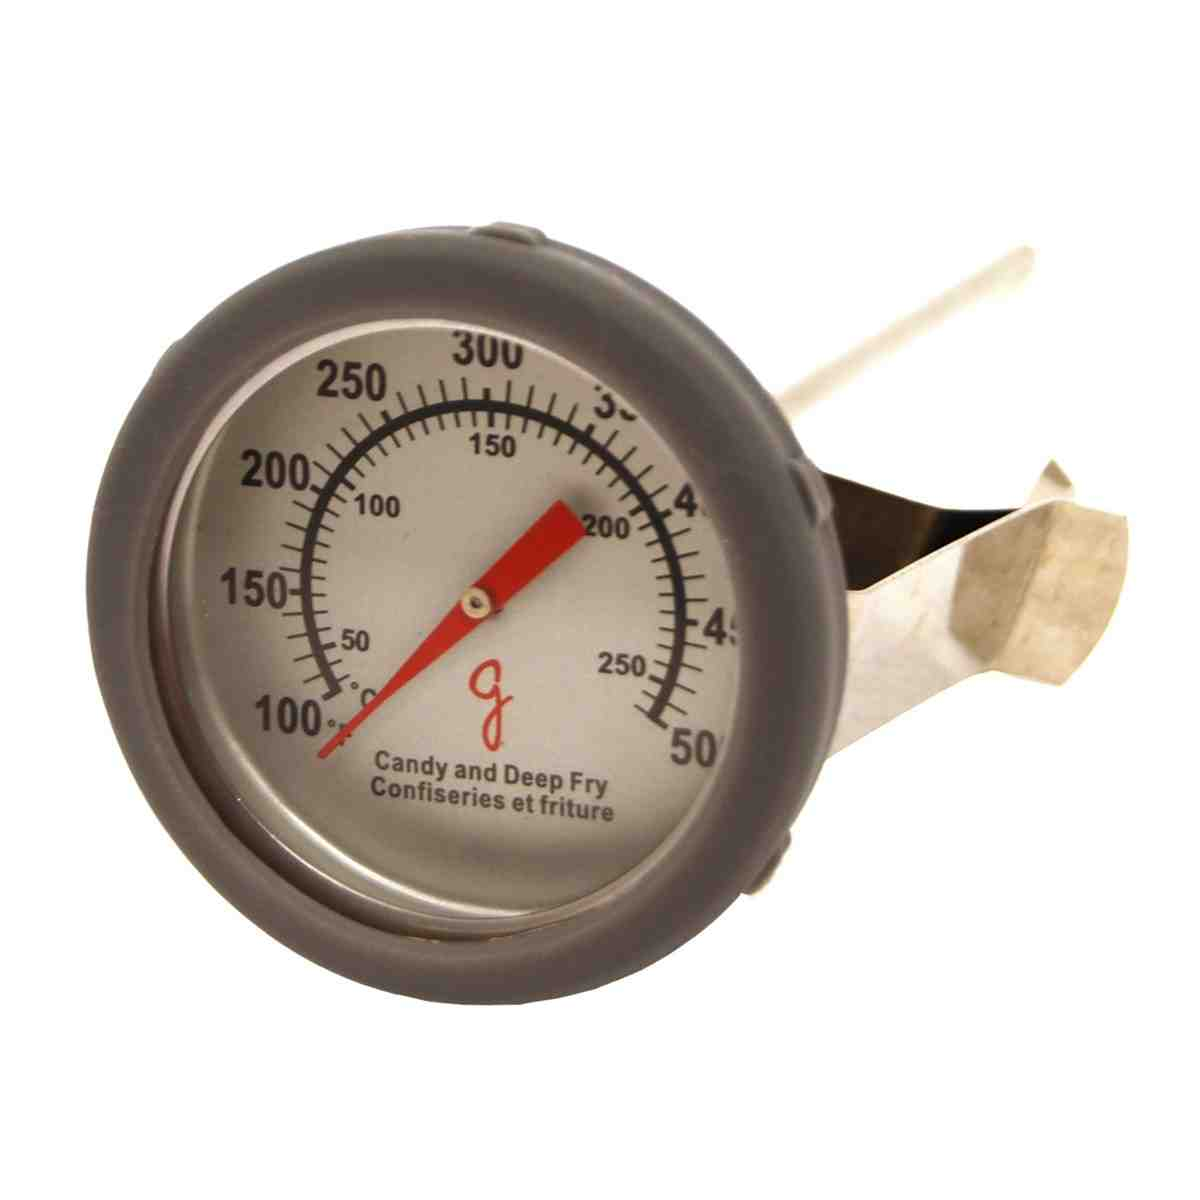 Silicone Candy & Deep Fry Thermometer